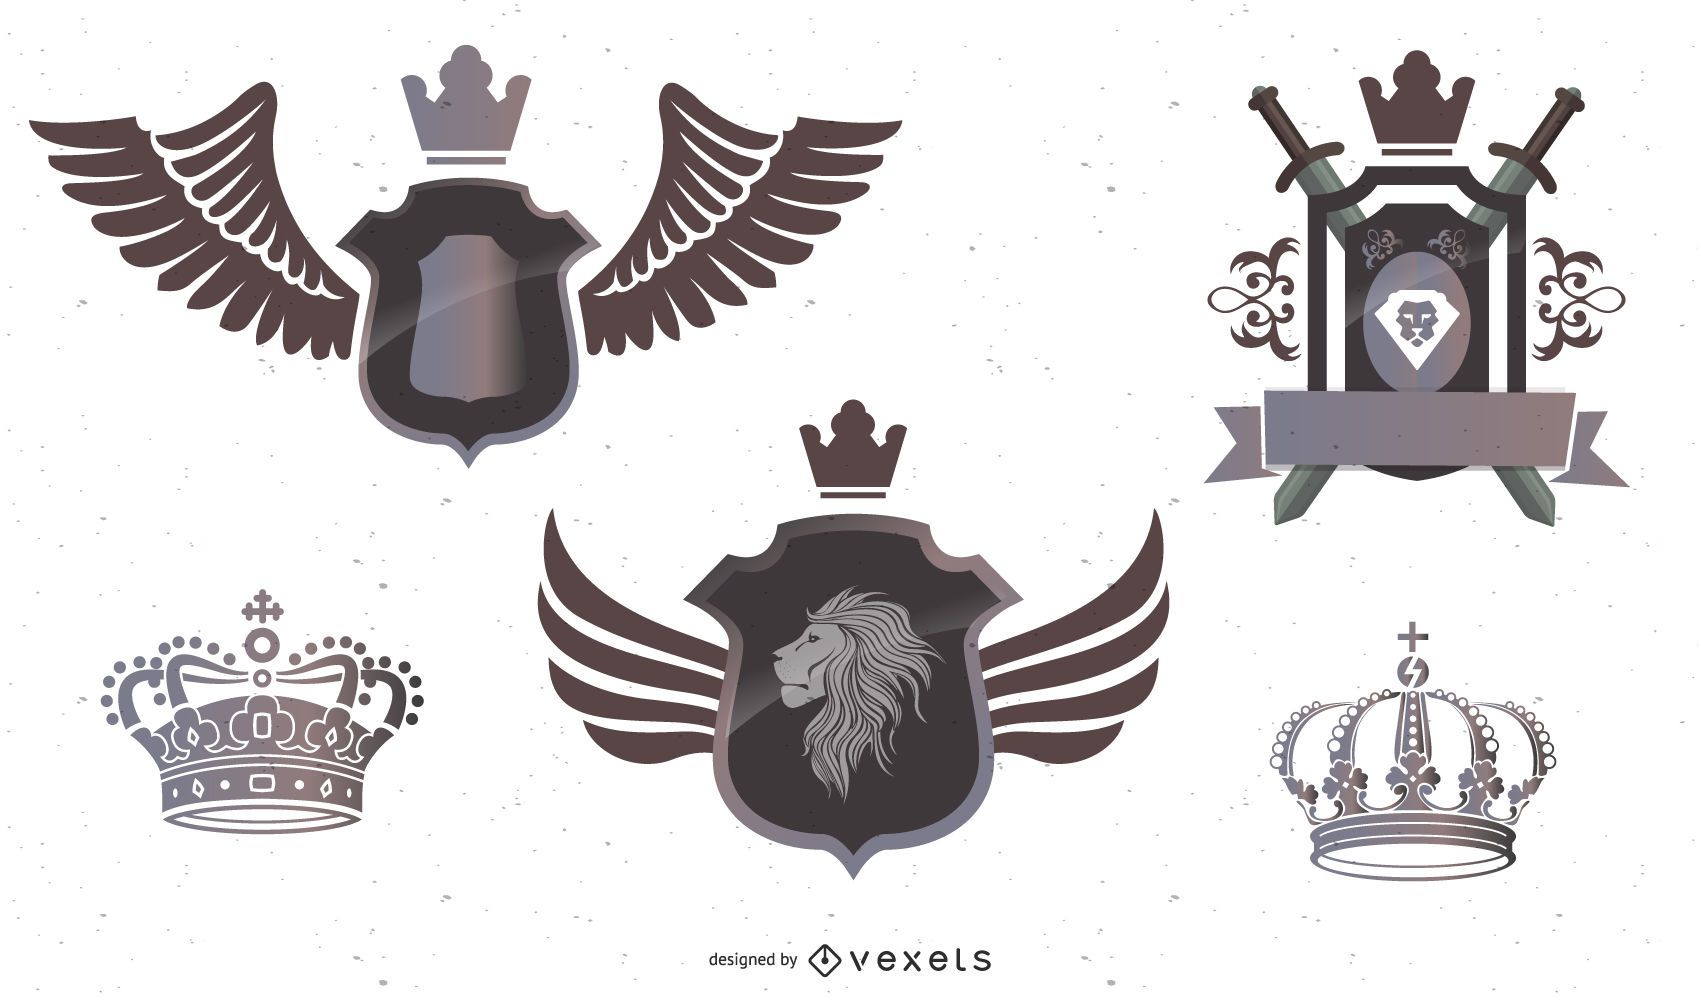 3 Heraldry Crests with Crowns Lions Banners